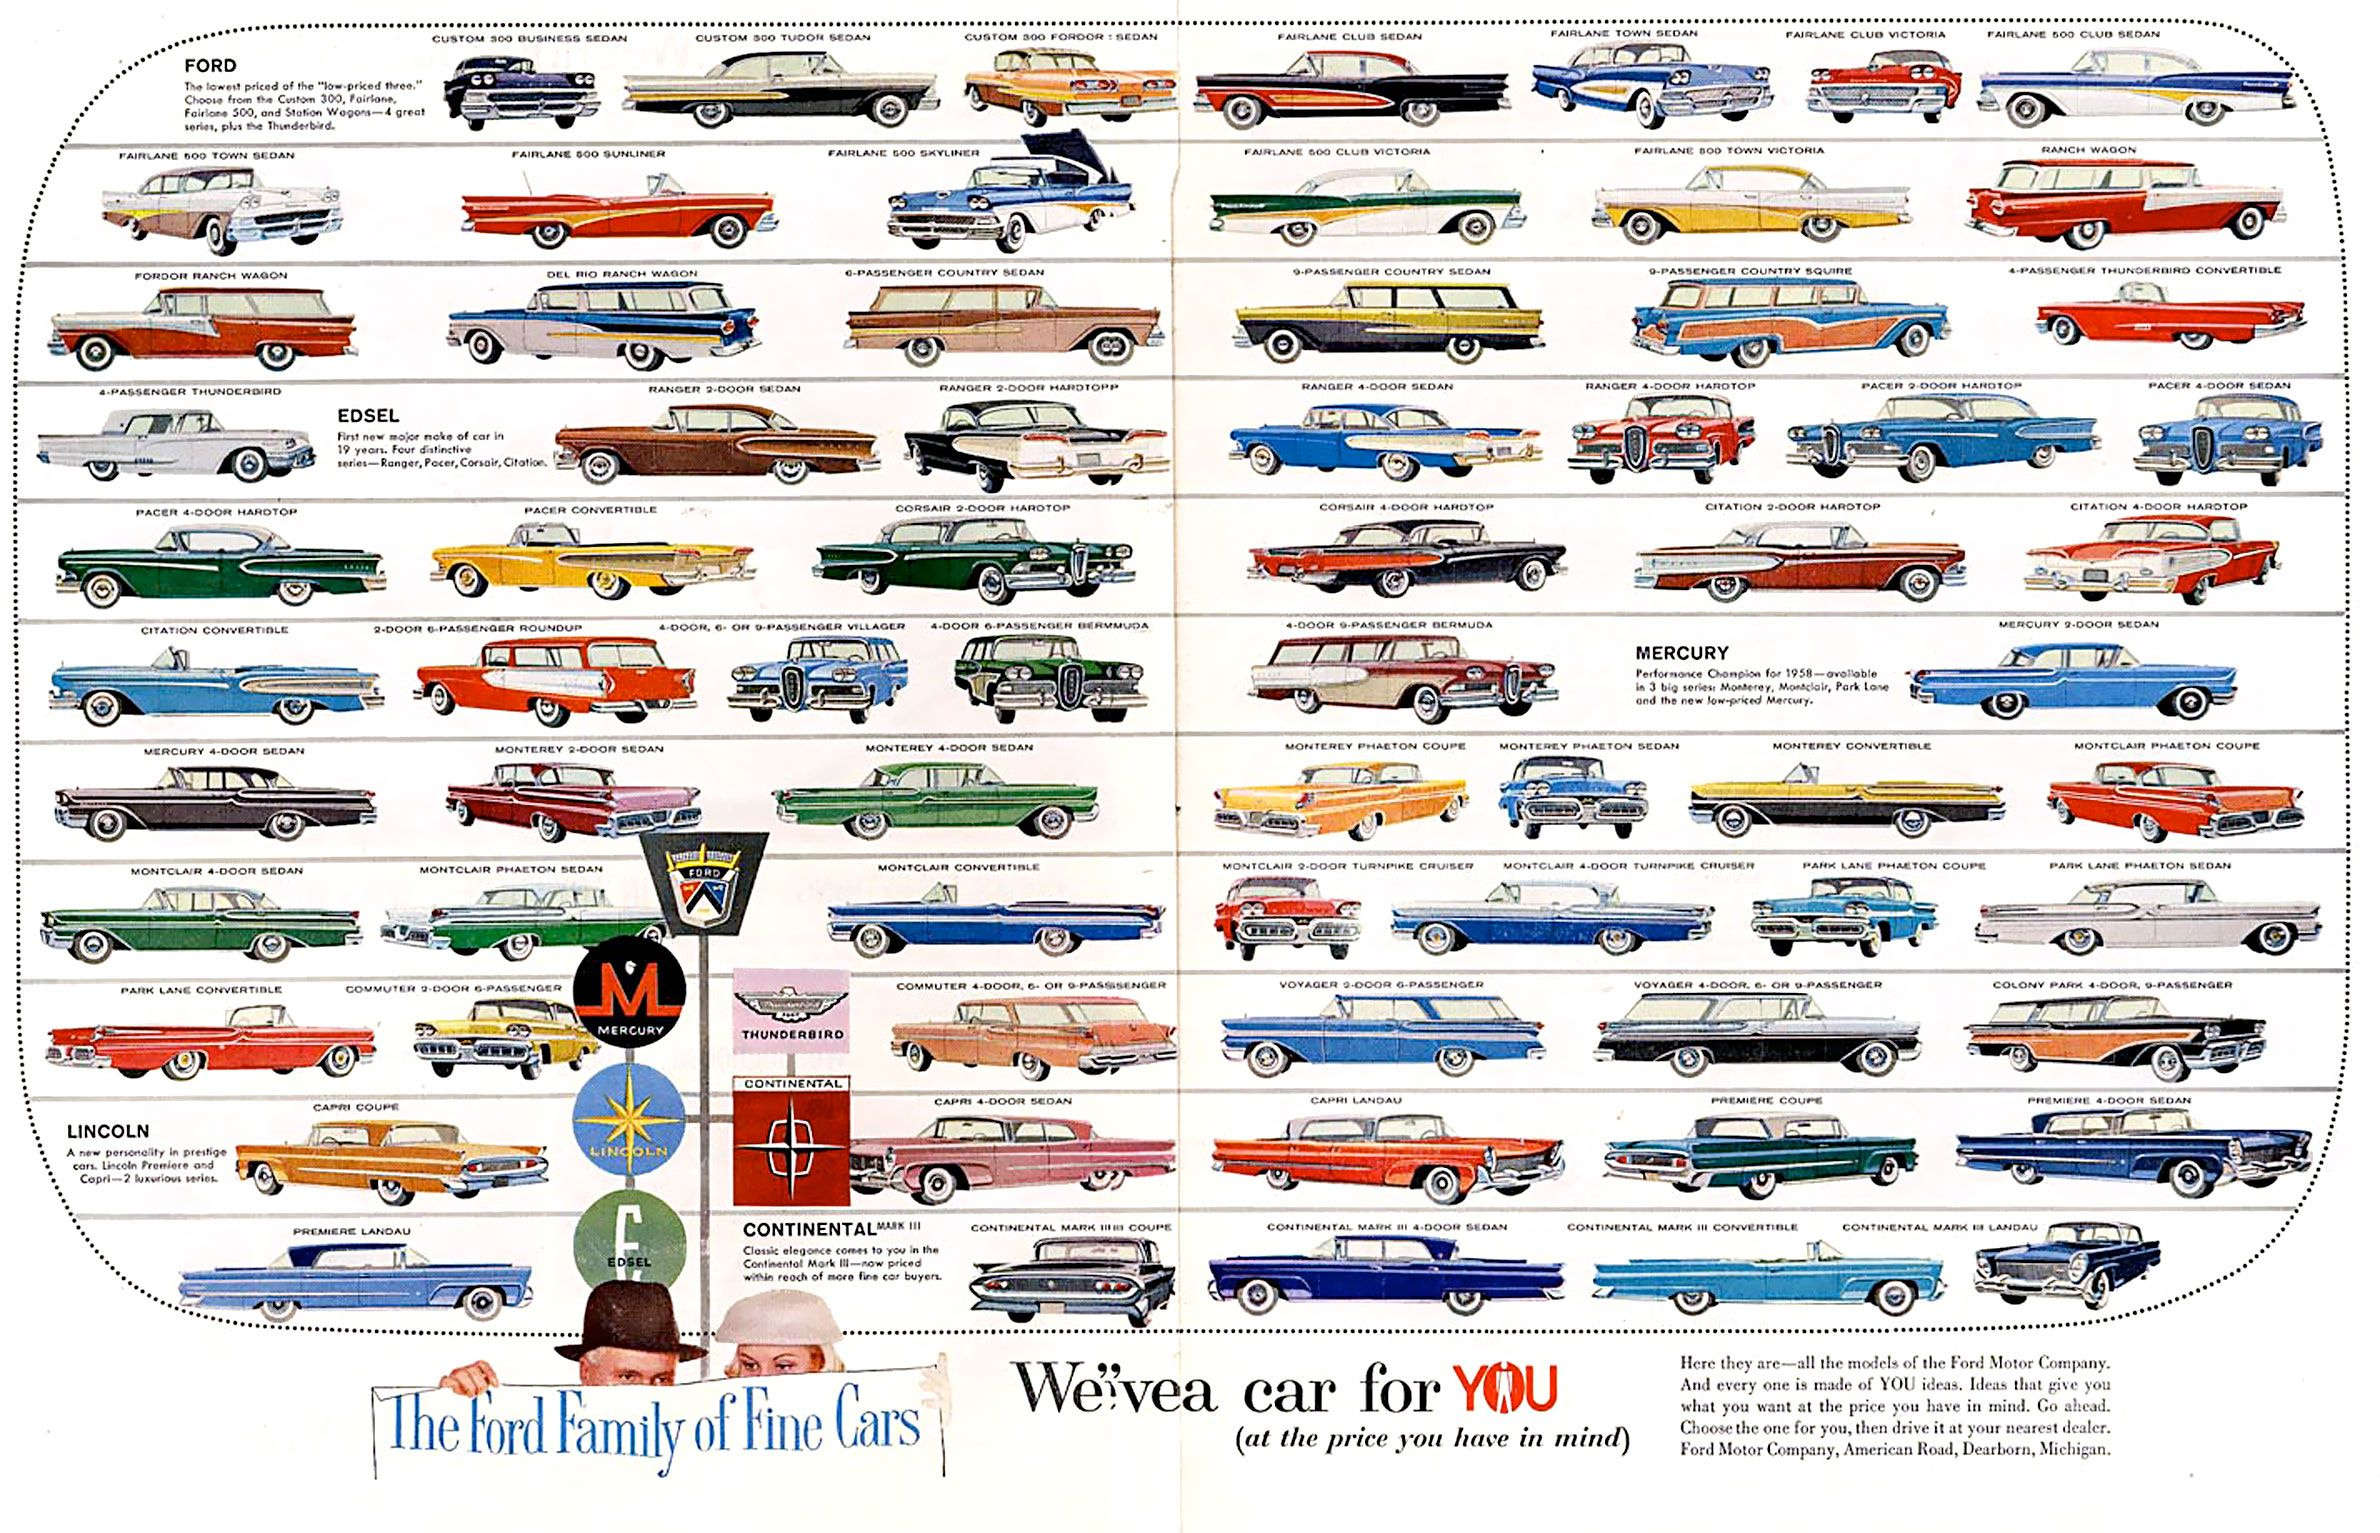 1958 Ford Family Of Cars Ford Car Ads Automotive Illustration